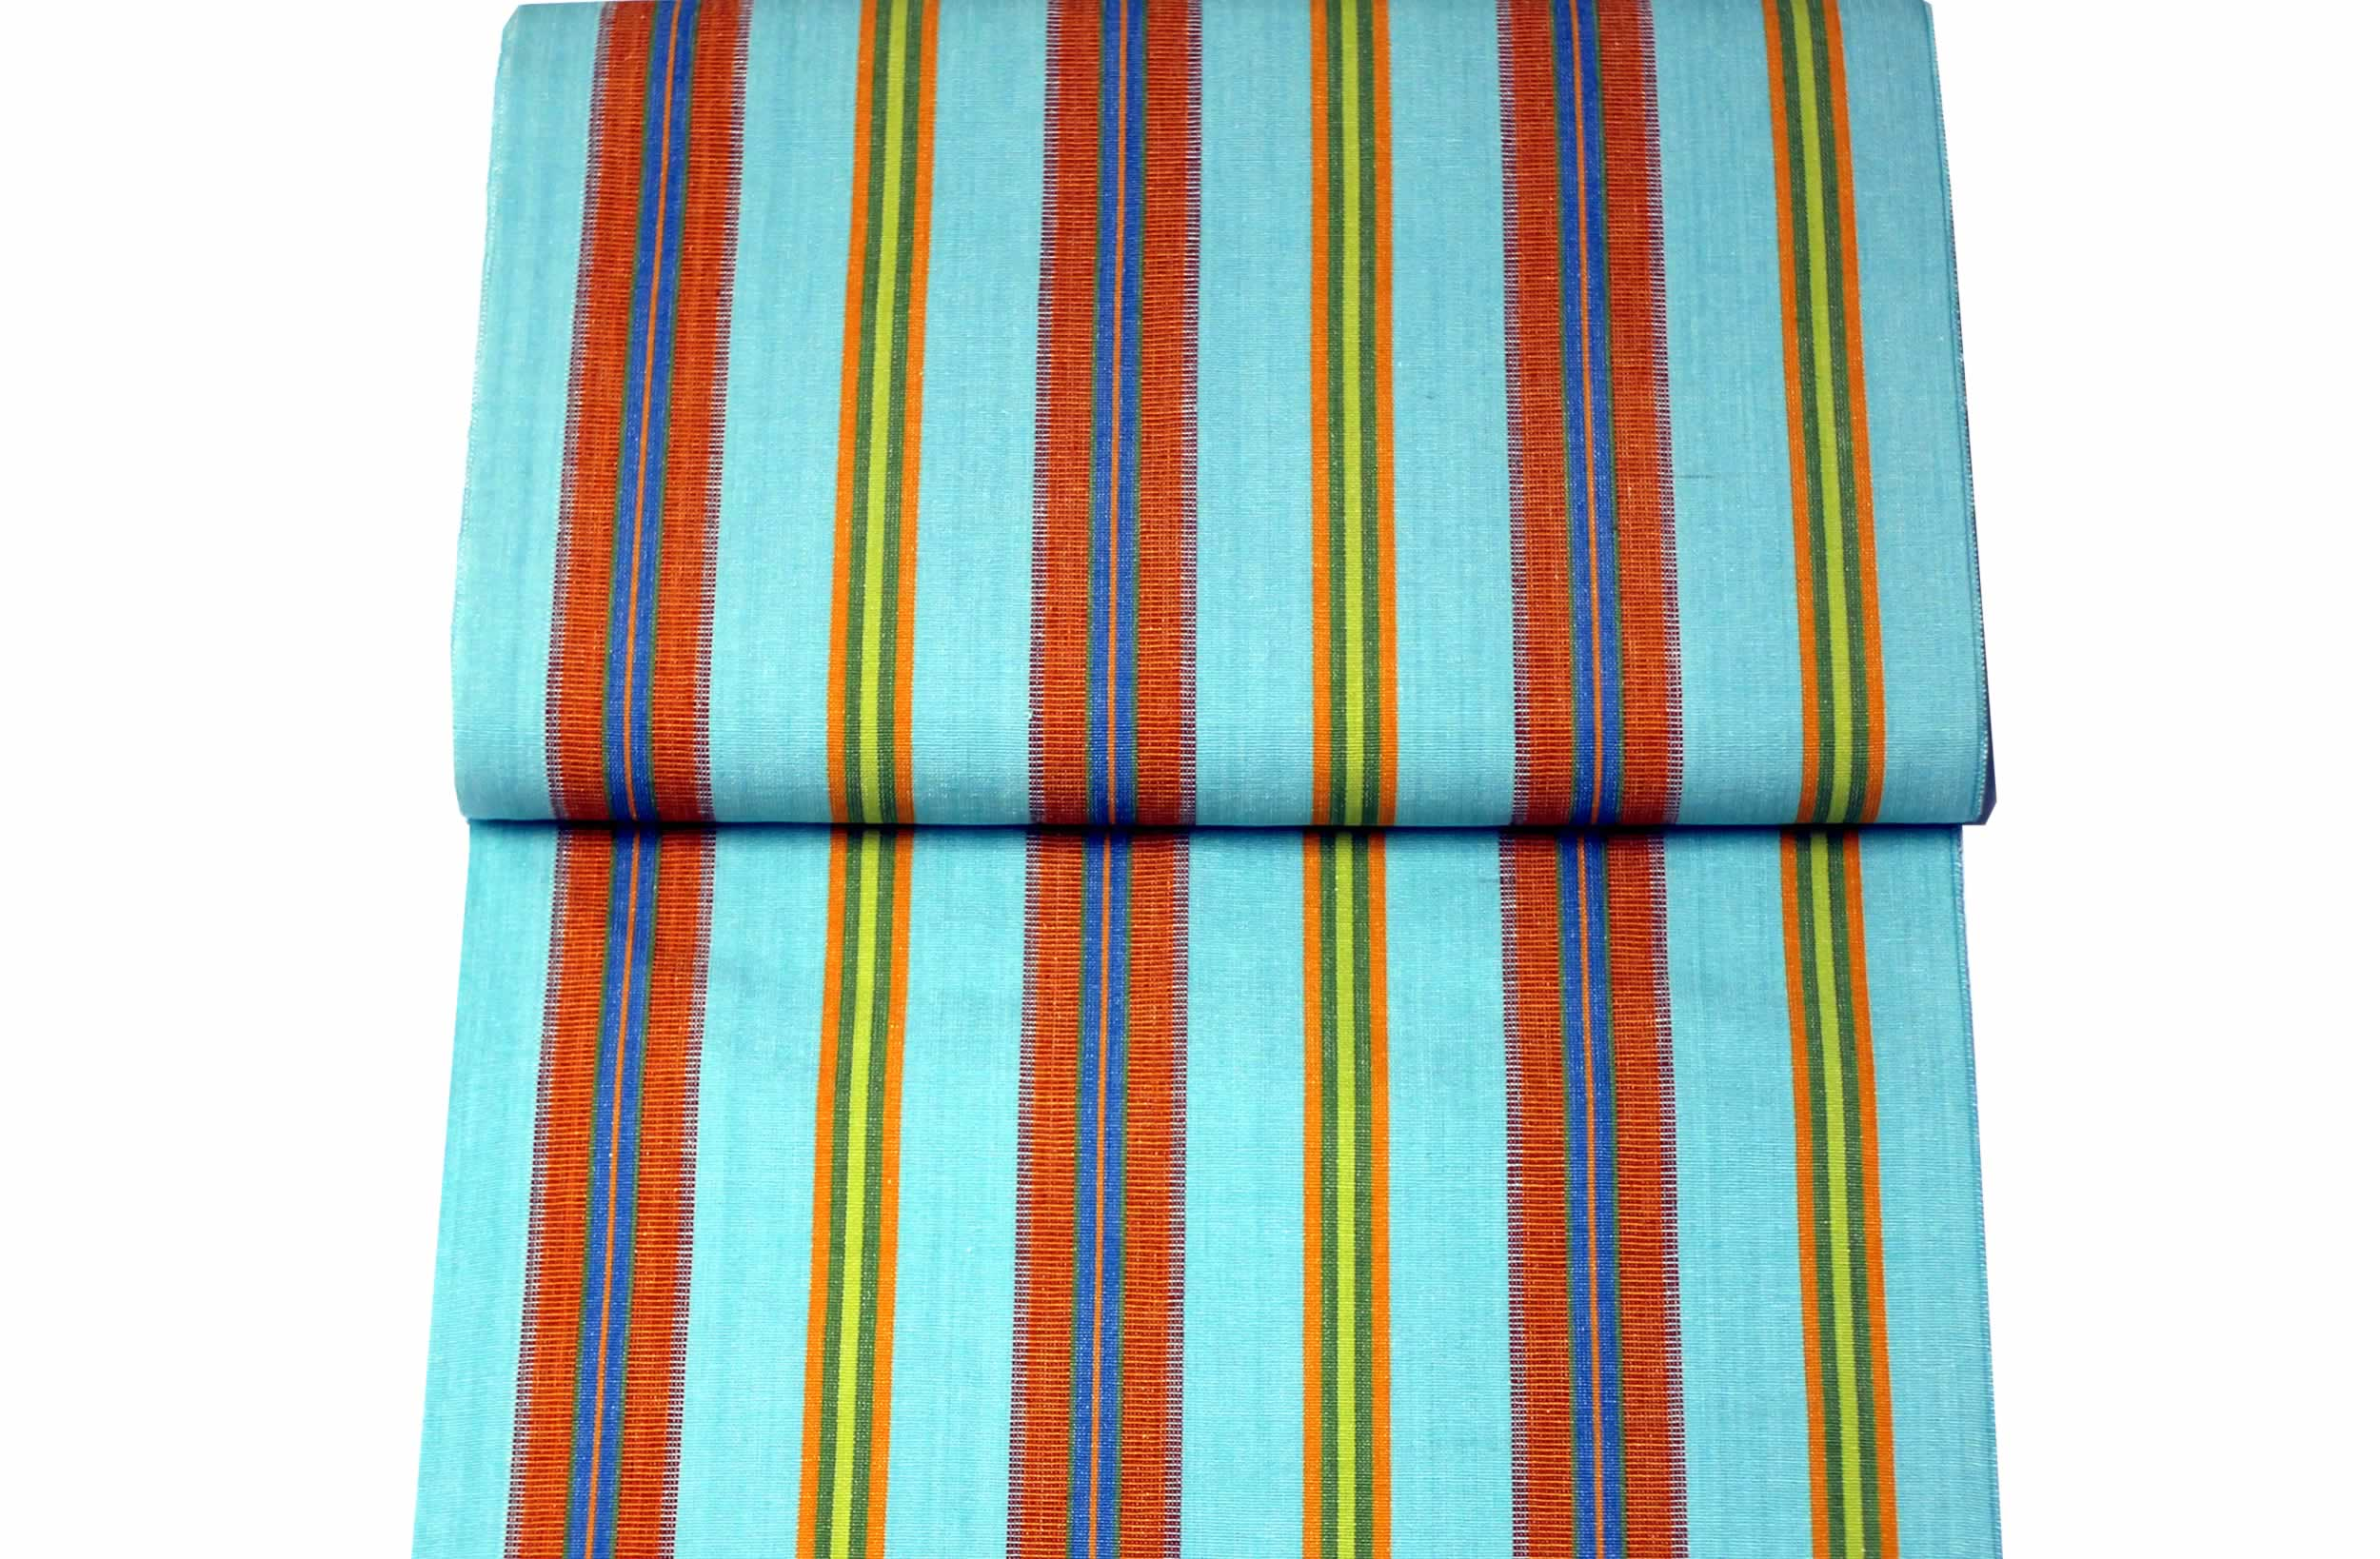 Tiffany blue Replacement Deck Chair Sling - Petanque